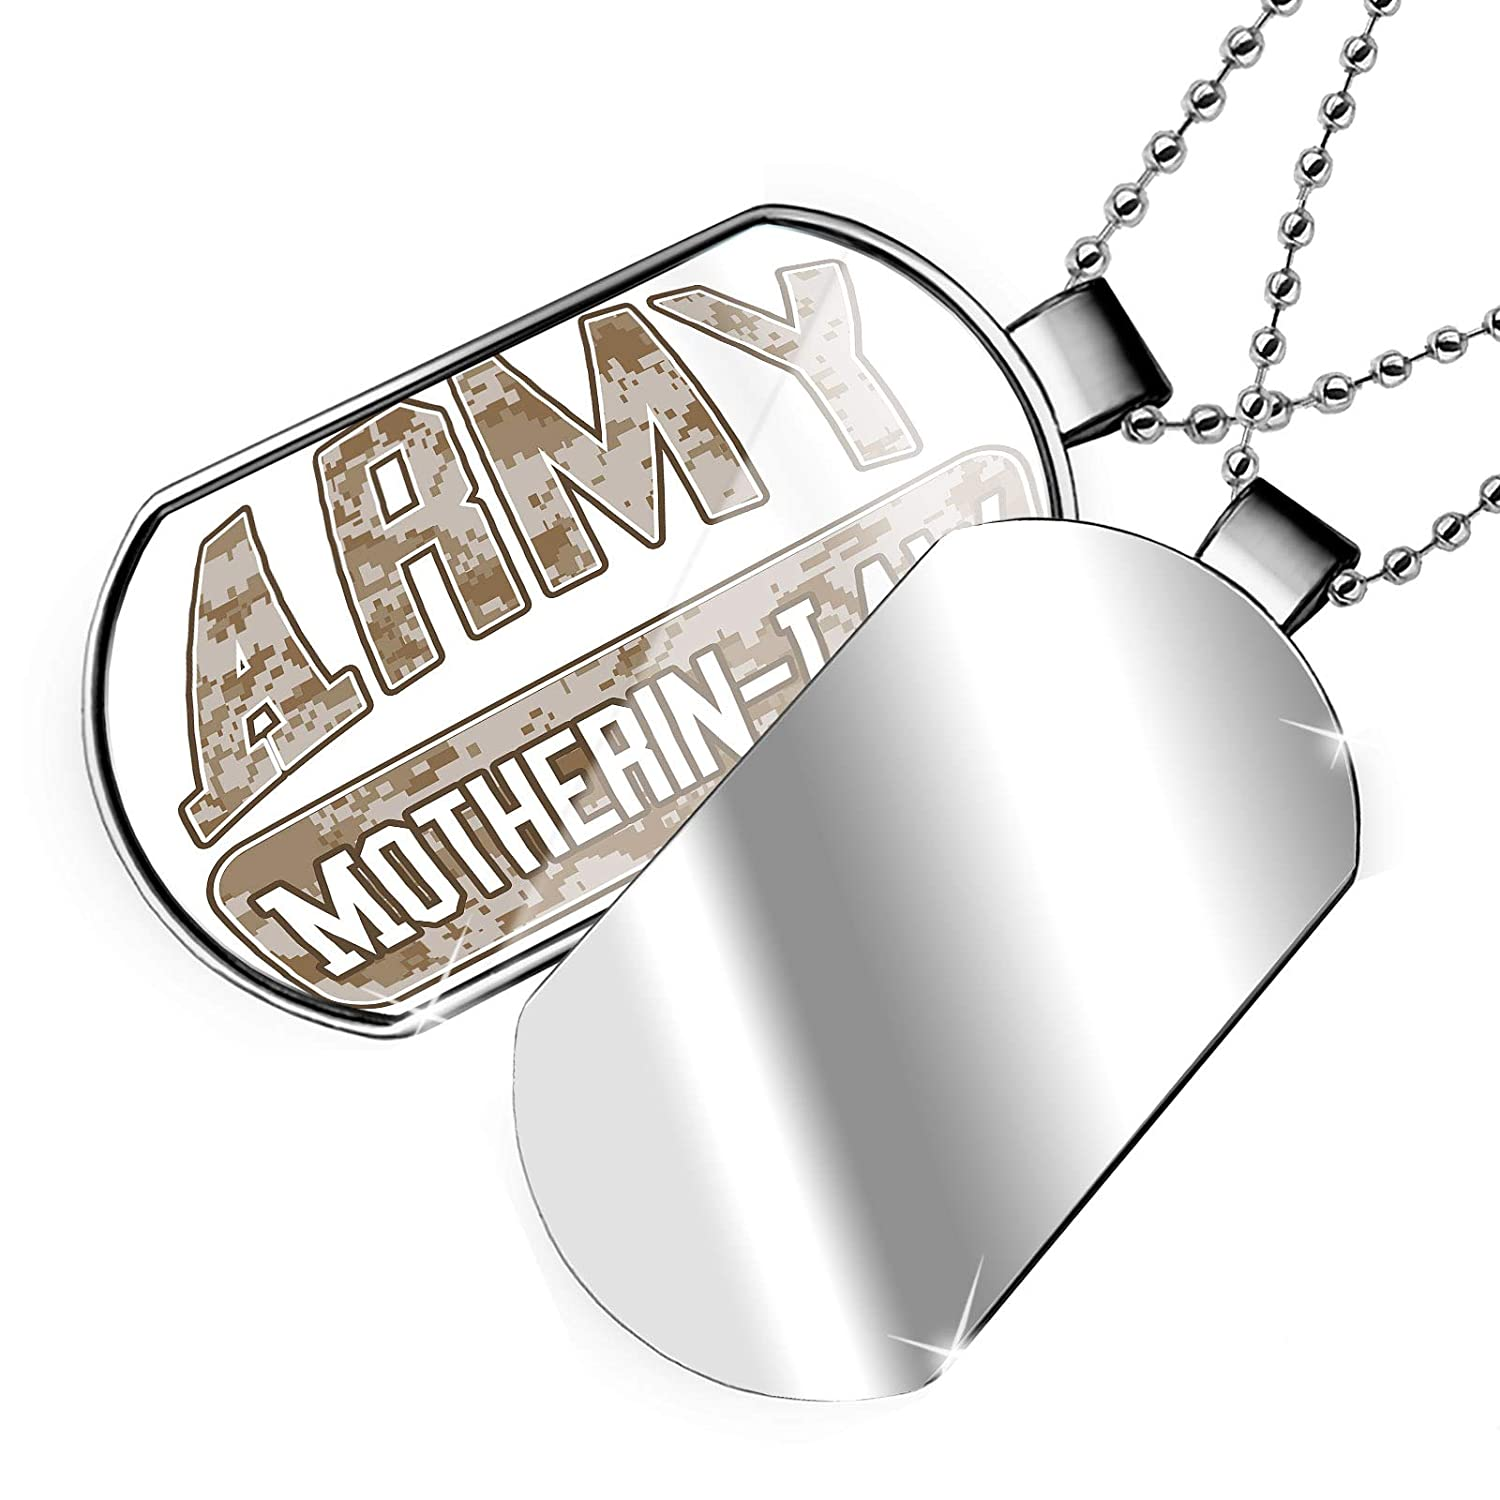 NEONBLOND Personalized Name Engraved Army Motherin-Law Camo Dogtag Necklace